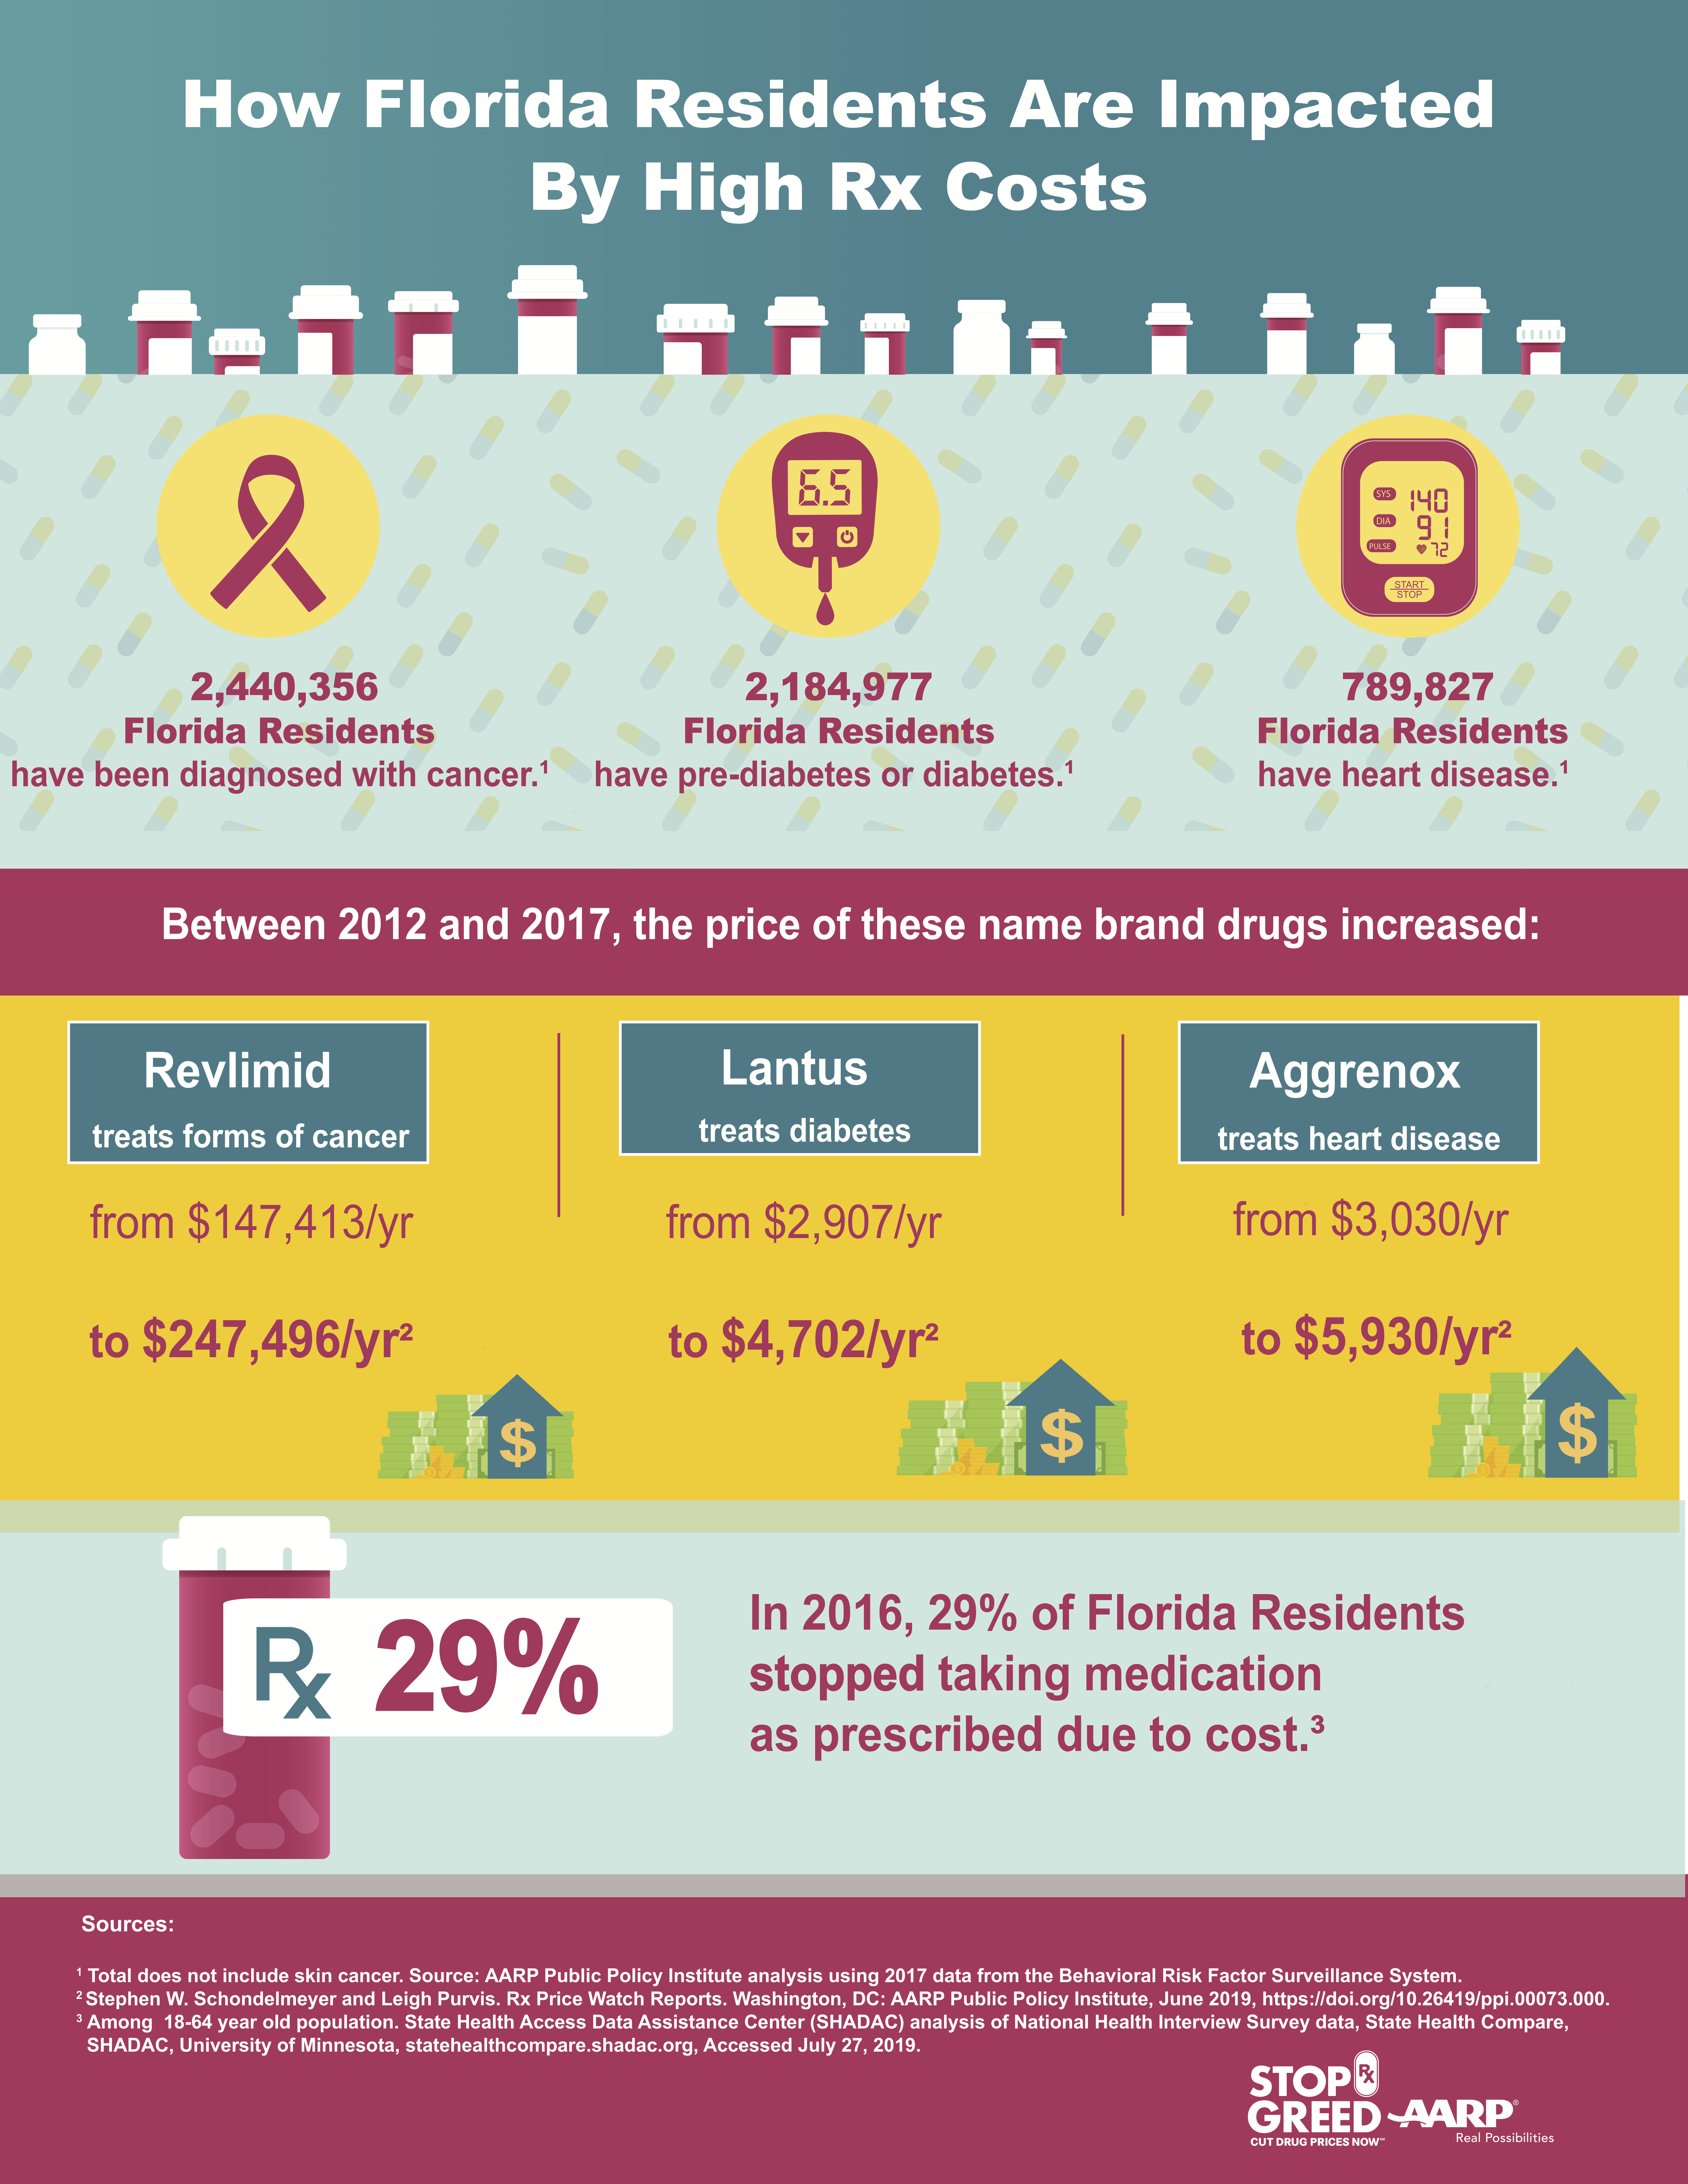 rx-state-infographic-3-issues-florida.png